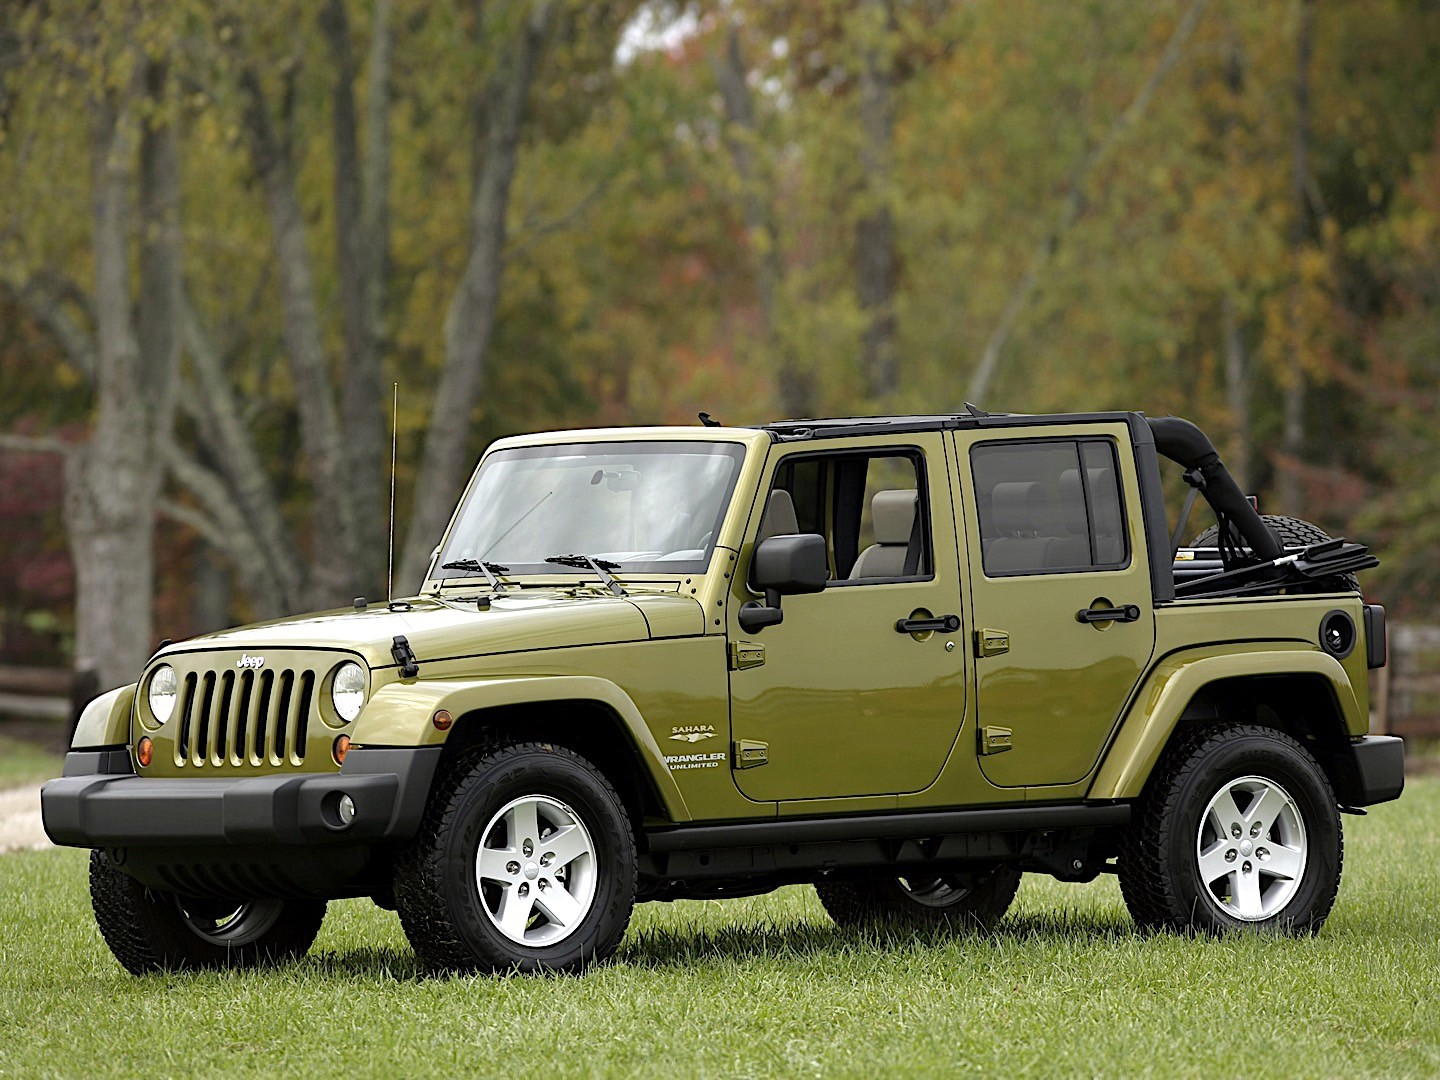 Jeep Wrangler Unlimited on Jeep Cherokee 2 8 2010 Specs And Images